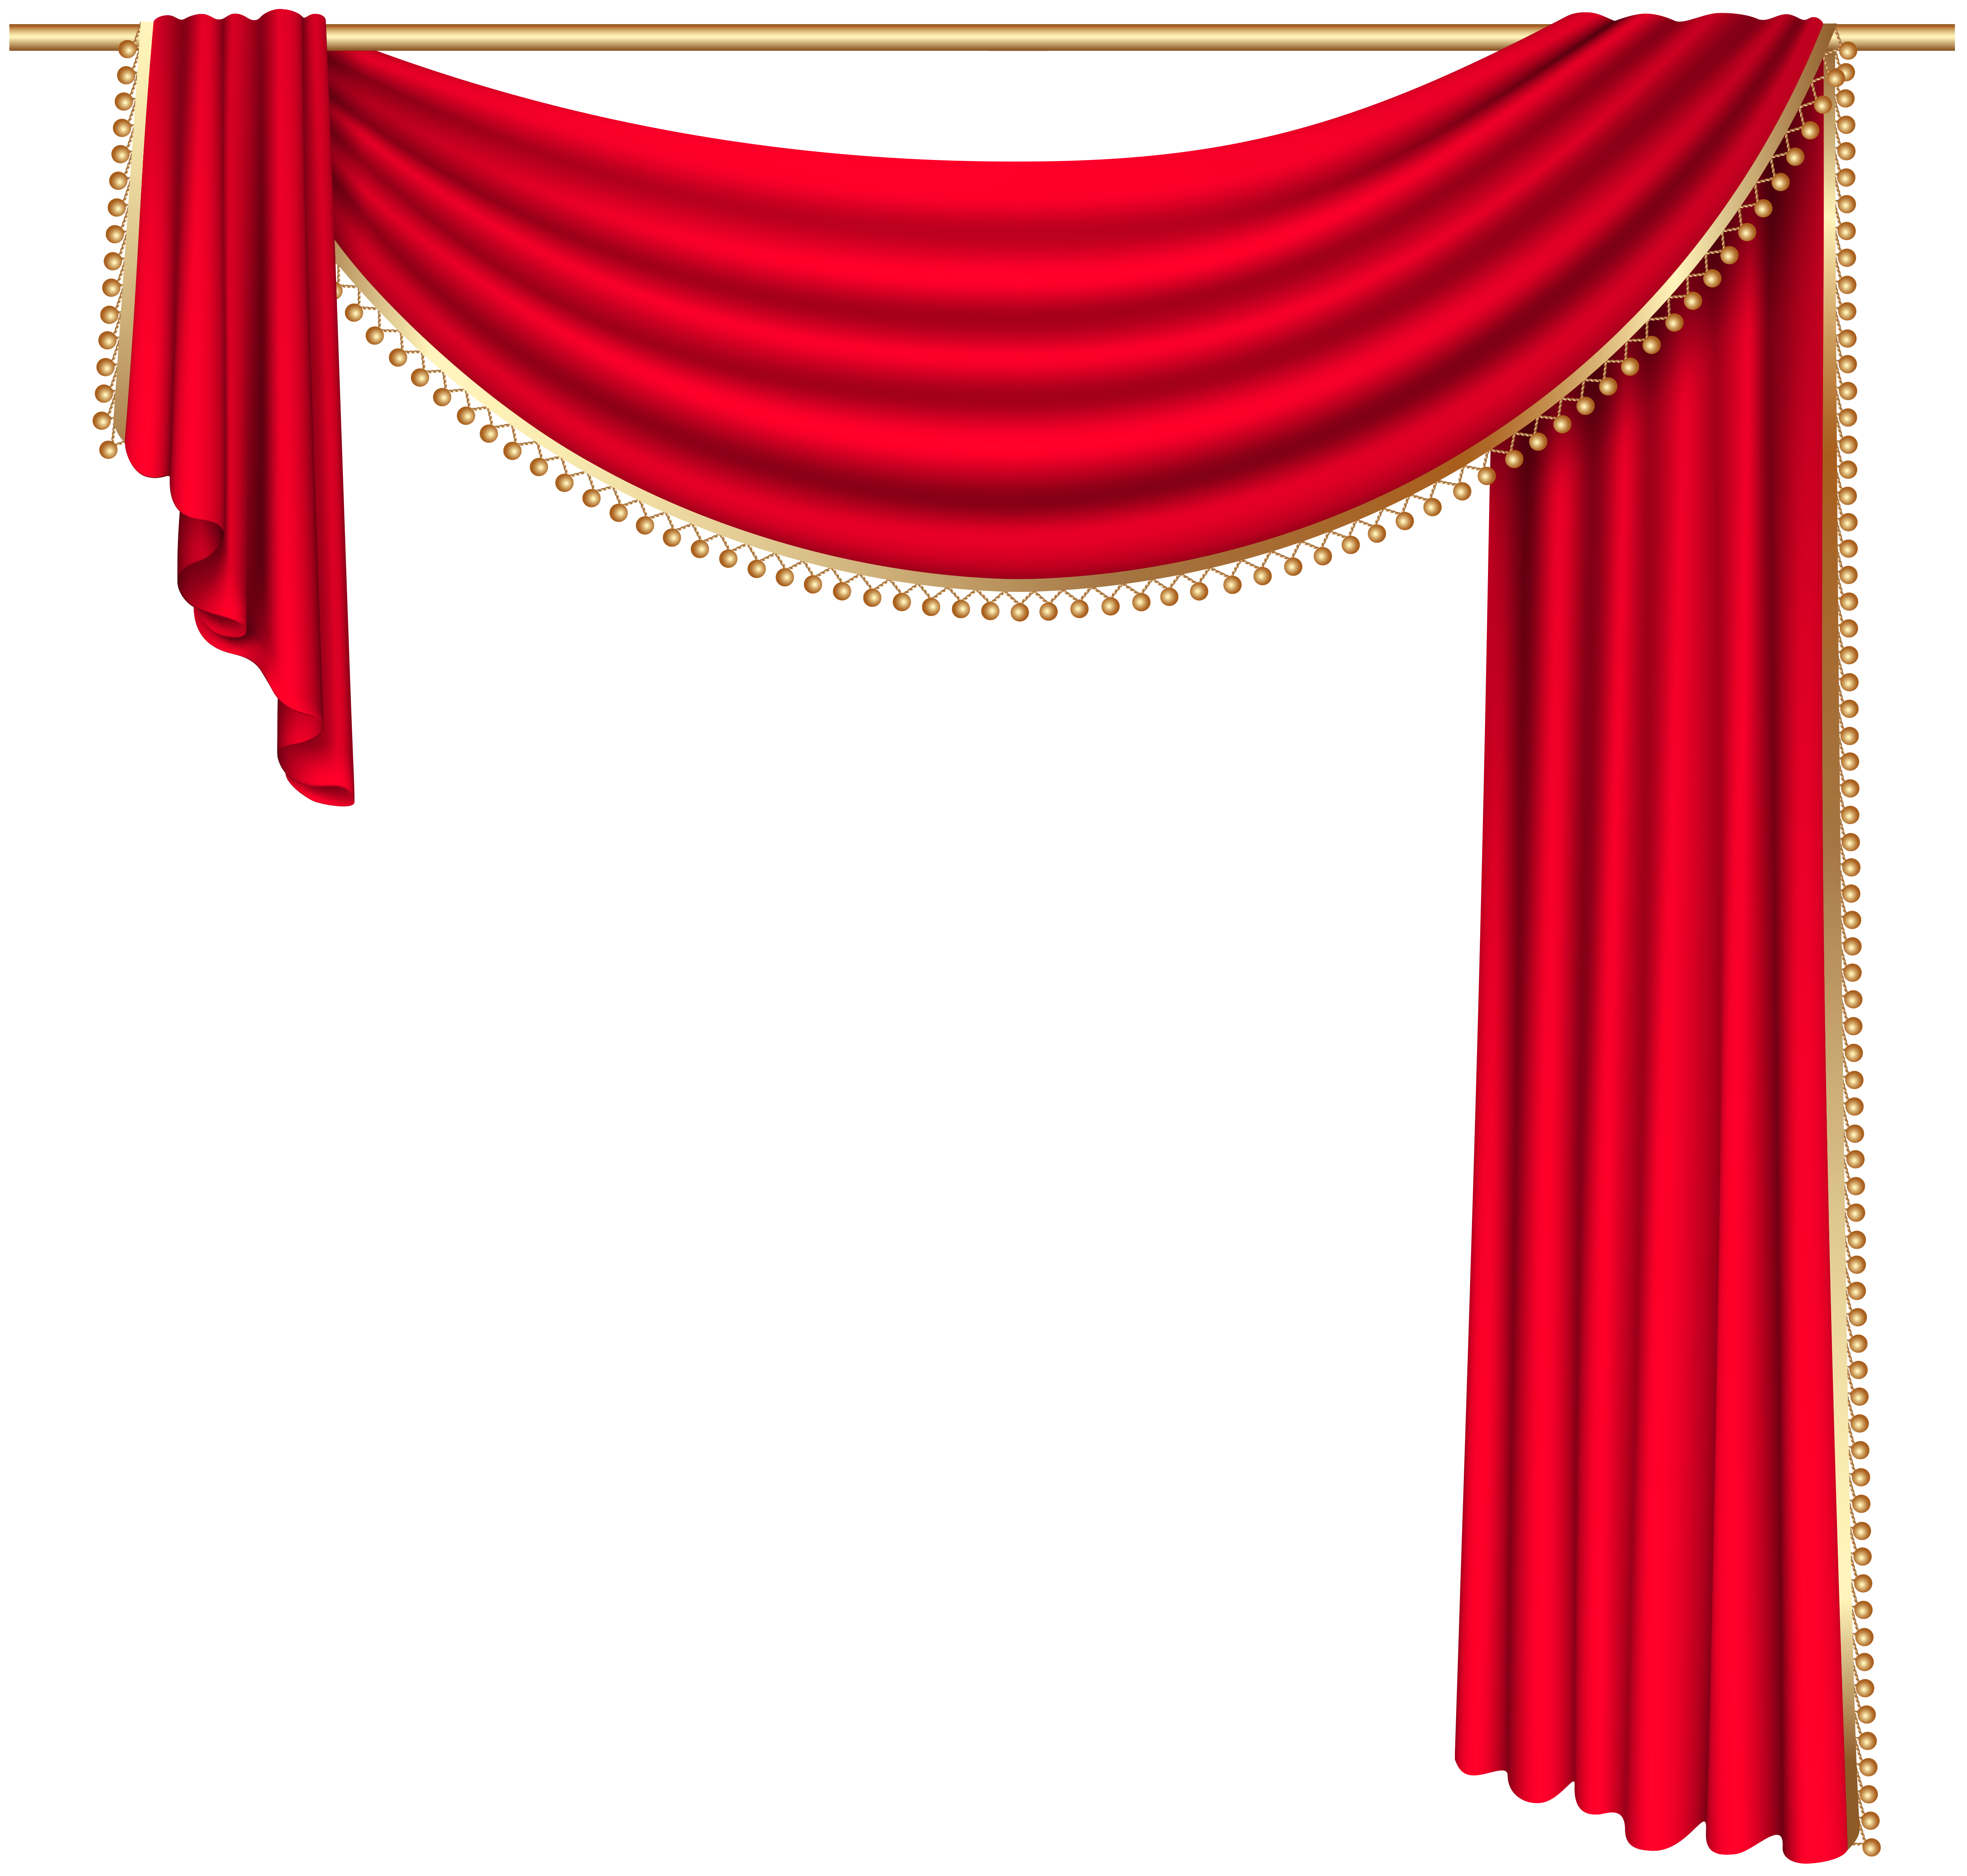 Curtains PNG Image